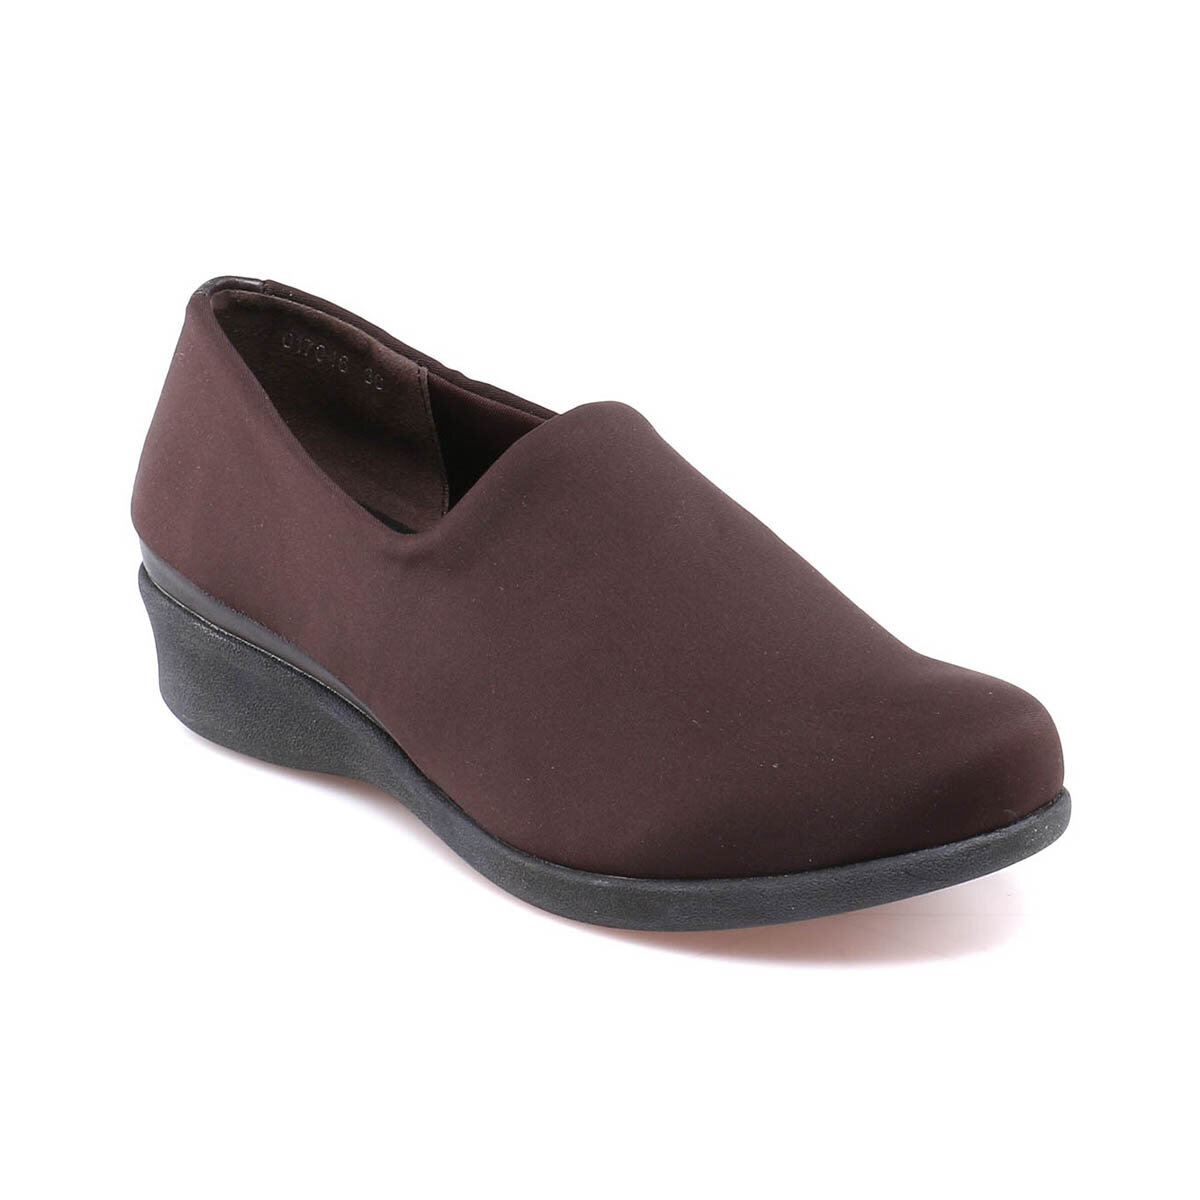 FLO O17046 Brown Women 'S Shoes Travel Soft